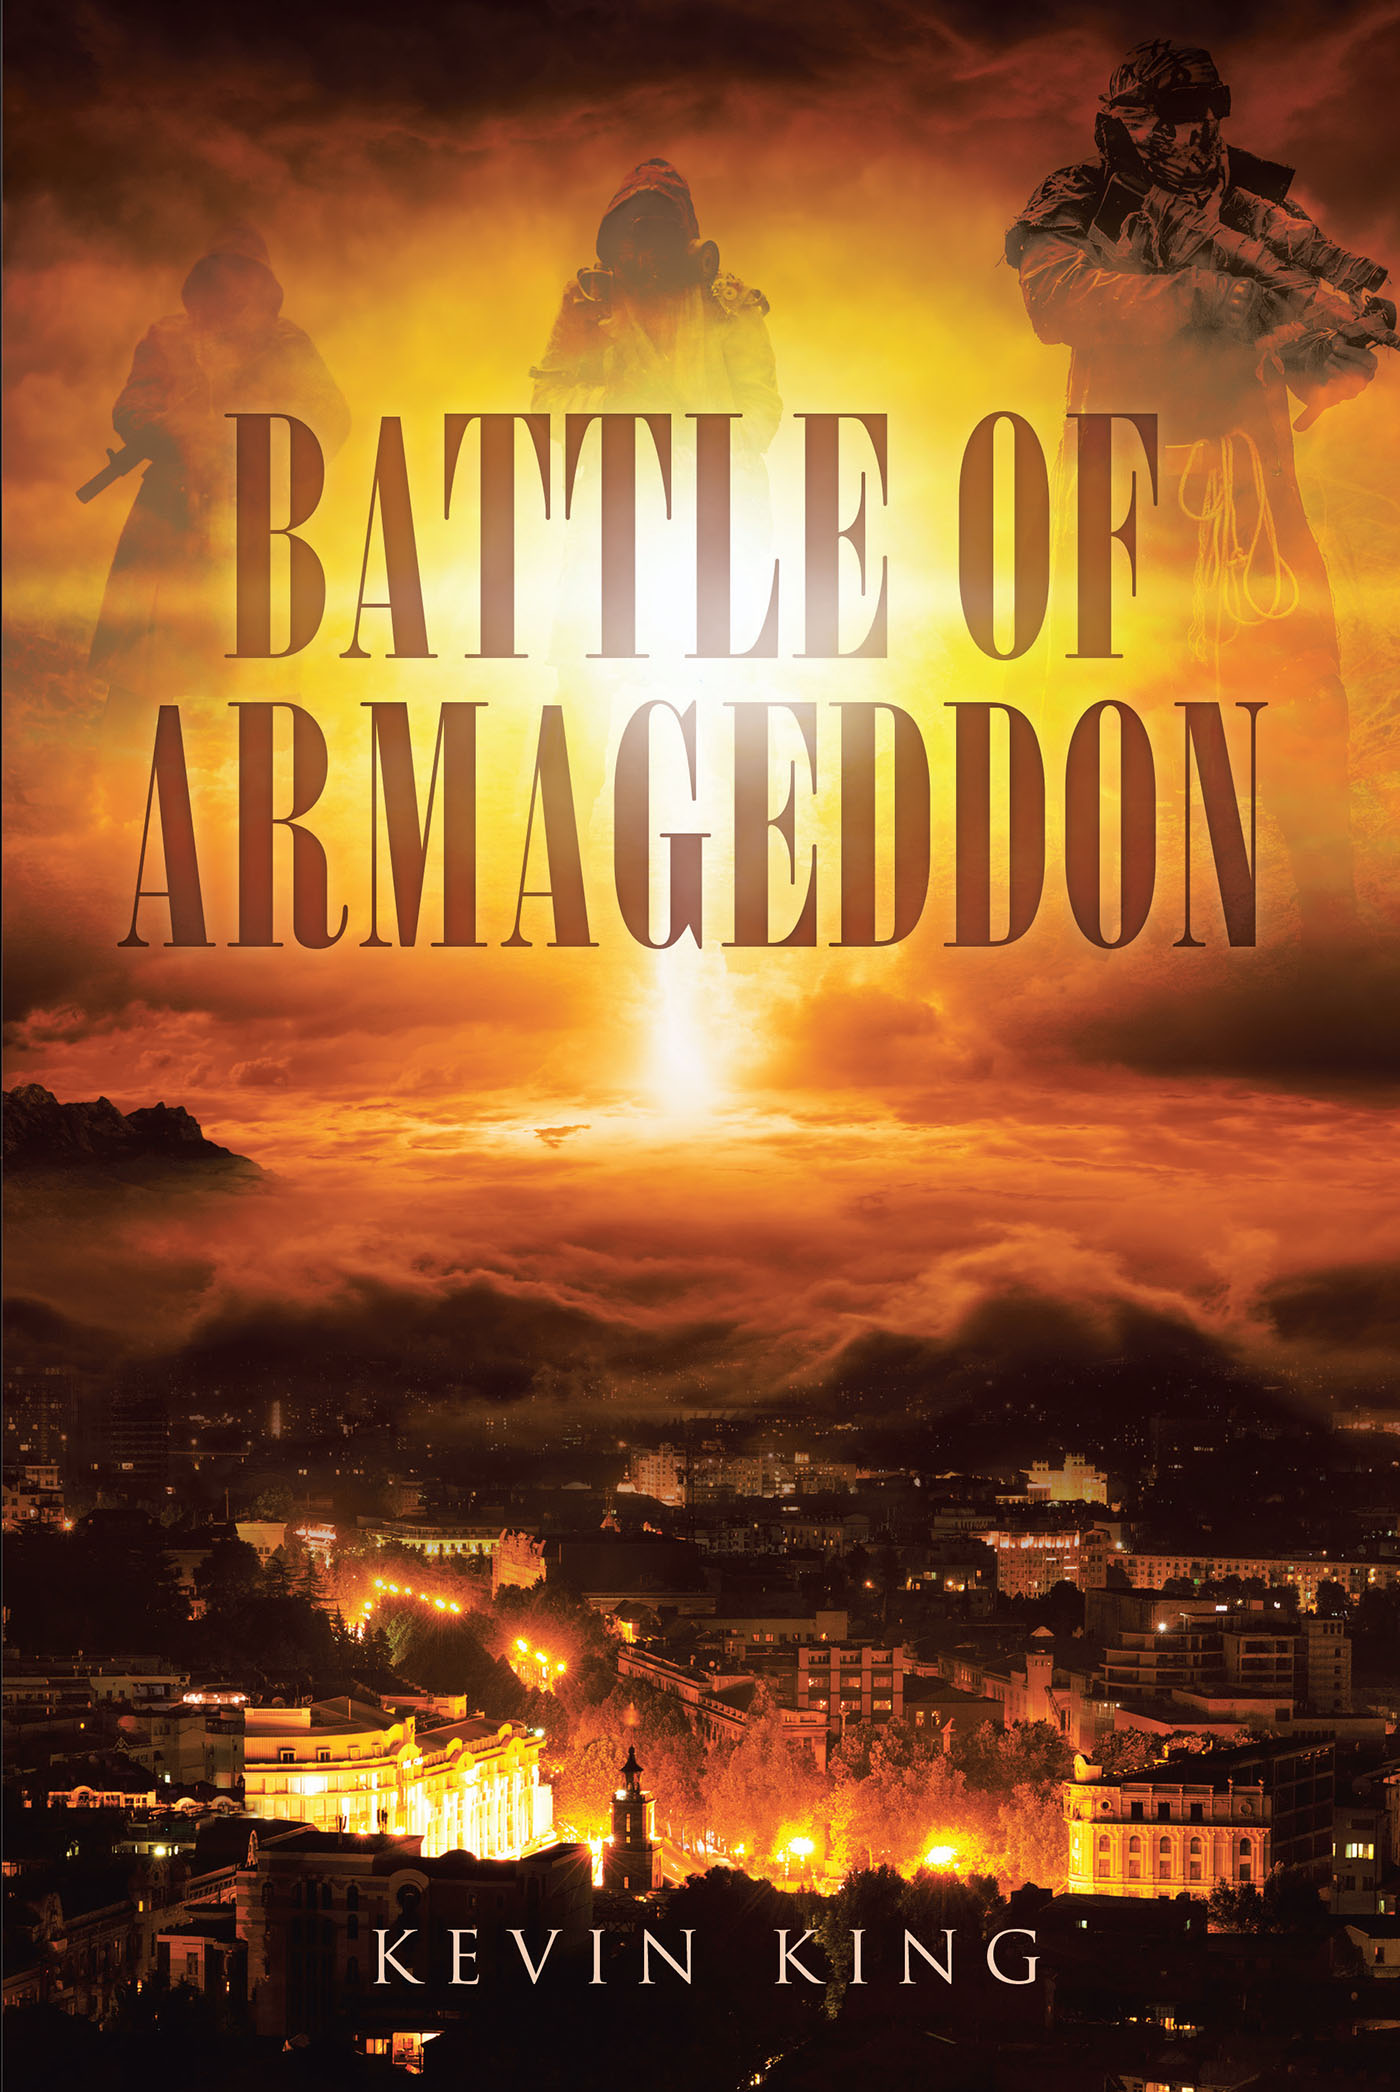 Search books christian faith publishing battle of armageddon publicscrutiny Image collections